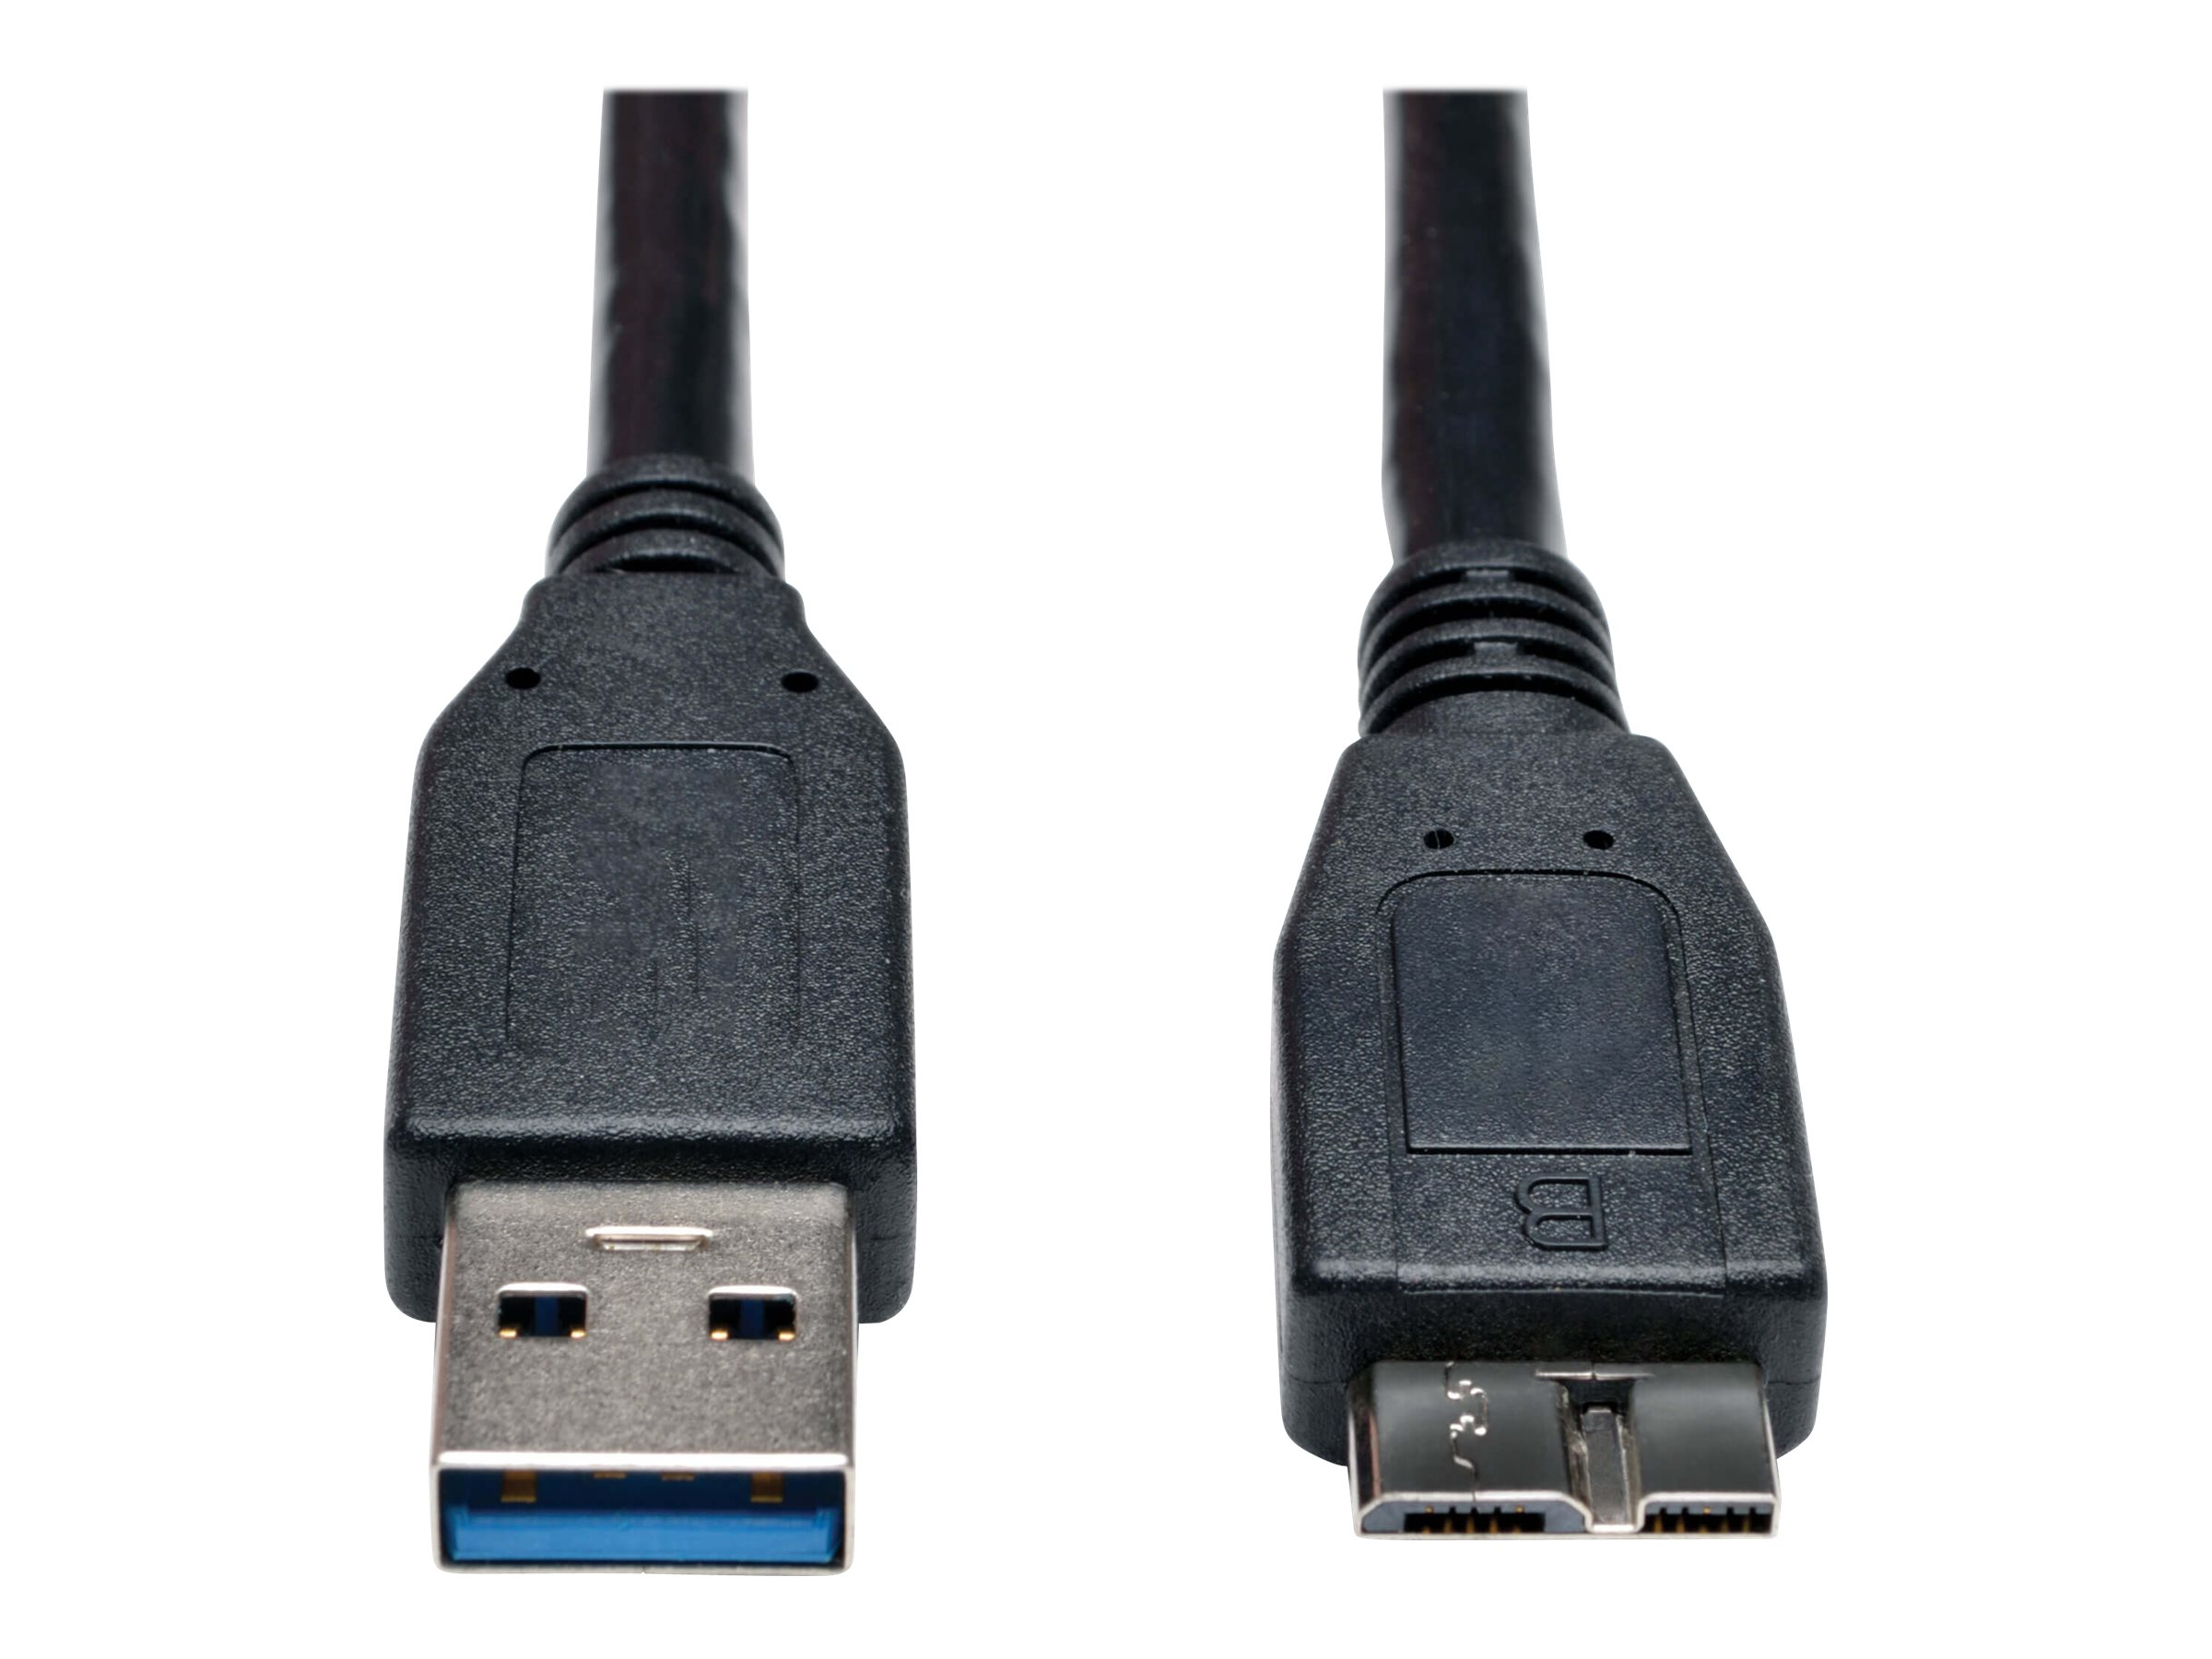 Tripp Lite 3ft USB 3.0 SuperSpeed Device Cable USB-A Male to USB Micro-B Male 3' - USB cable - 91 cm